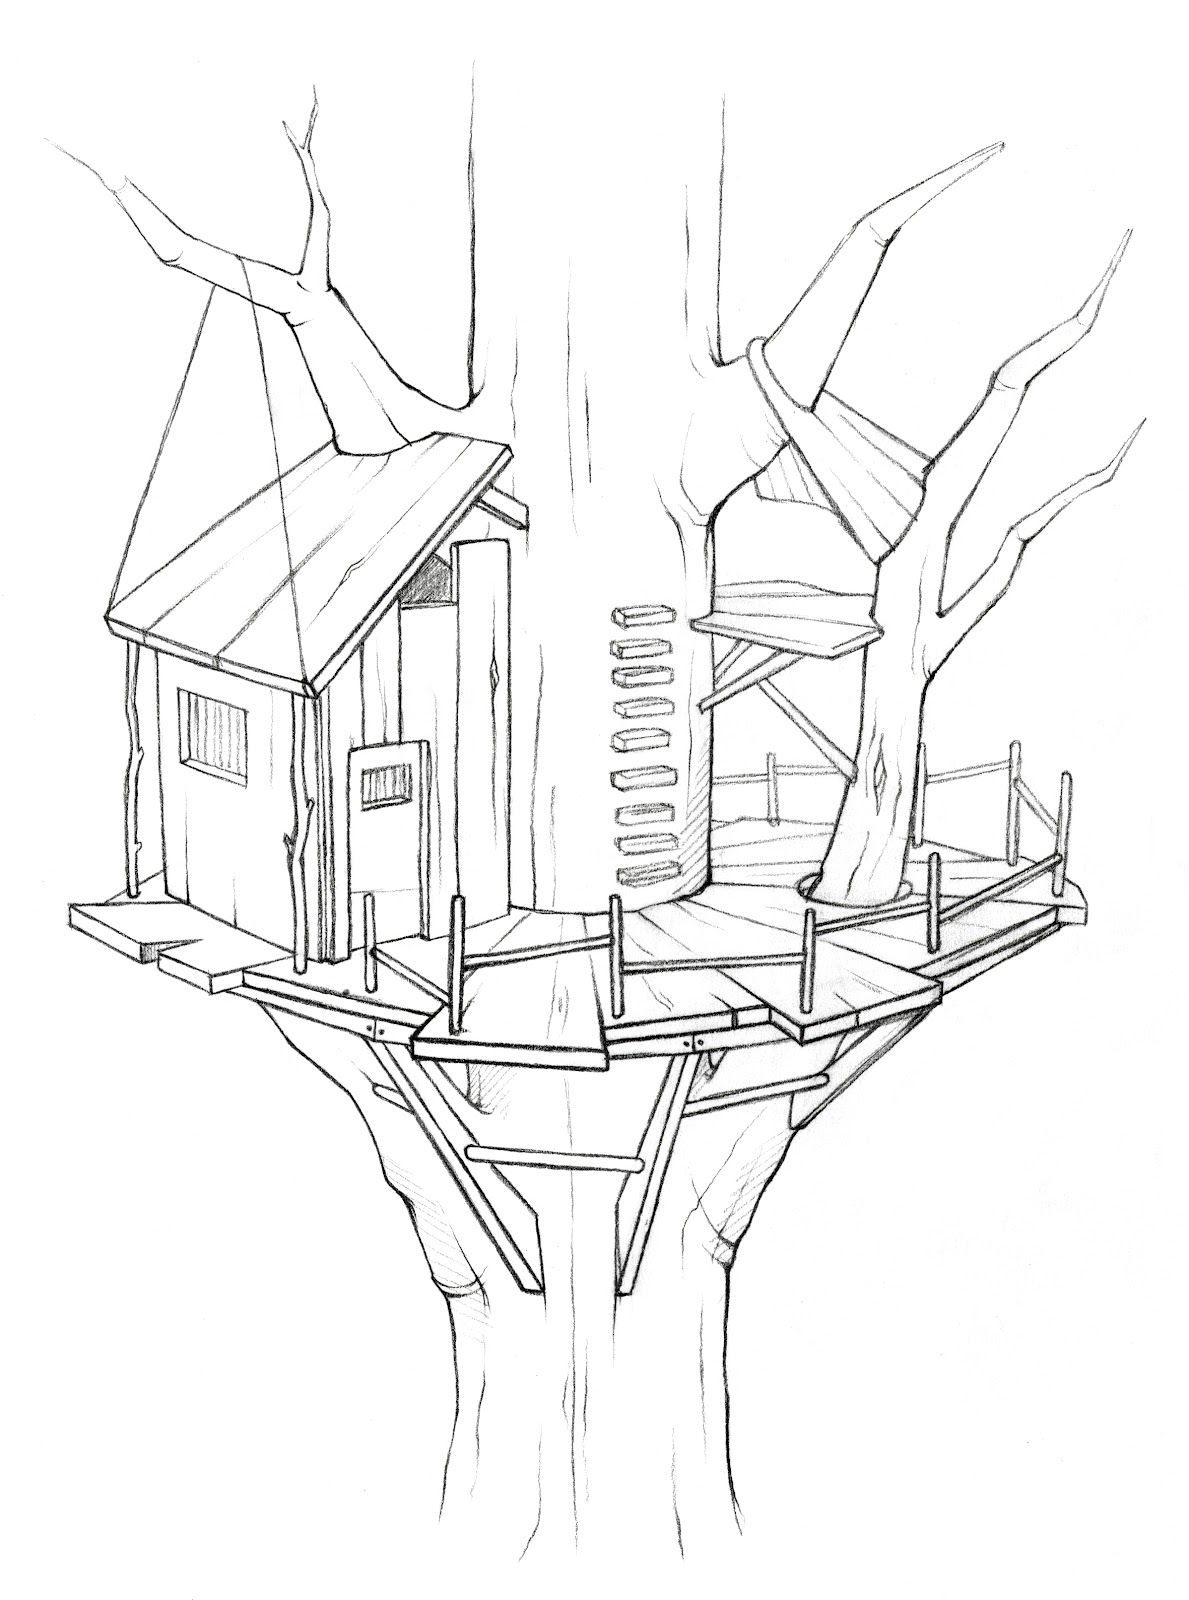 Tree house coloring pages more images of tree house coloring